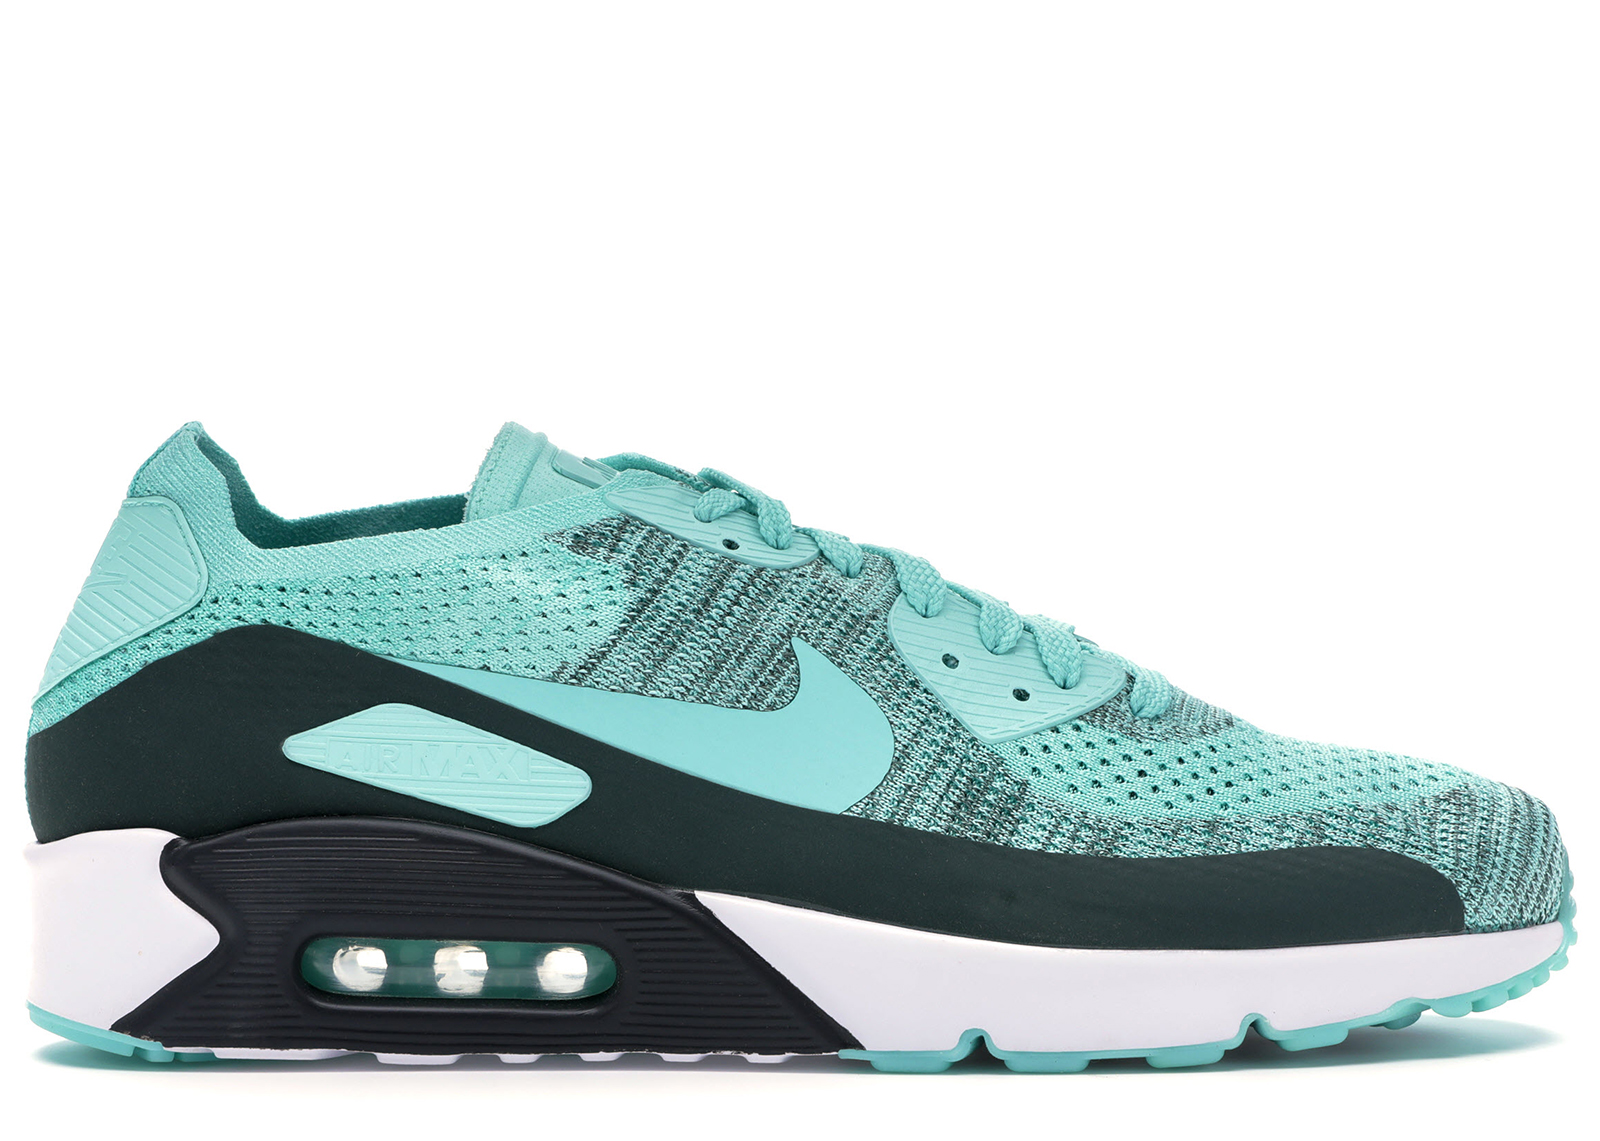 Nike Air Max 90 Ultra 2.0 Flyknit Hyper Turquoise Hyper Turquoise ...